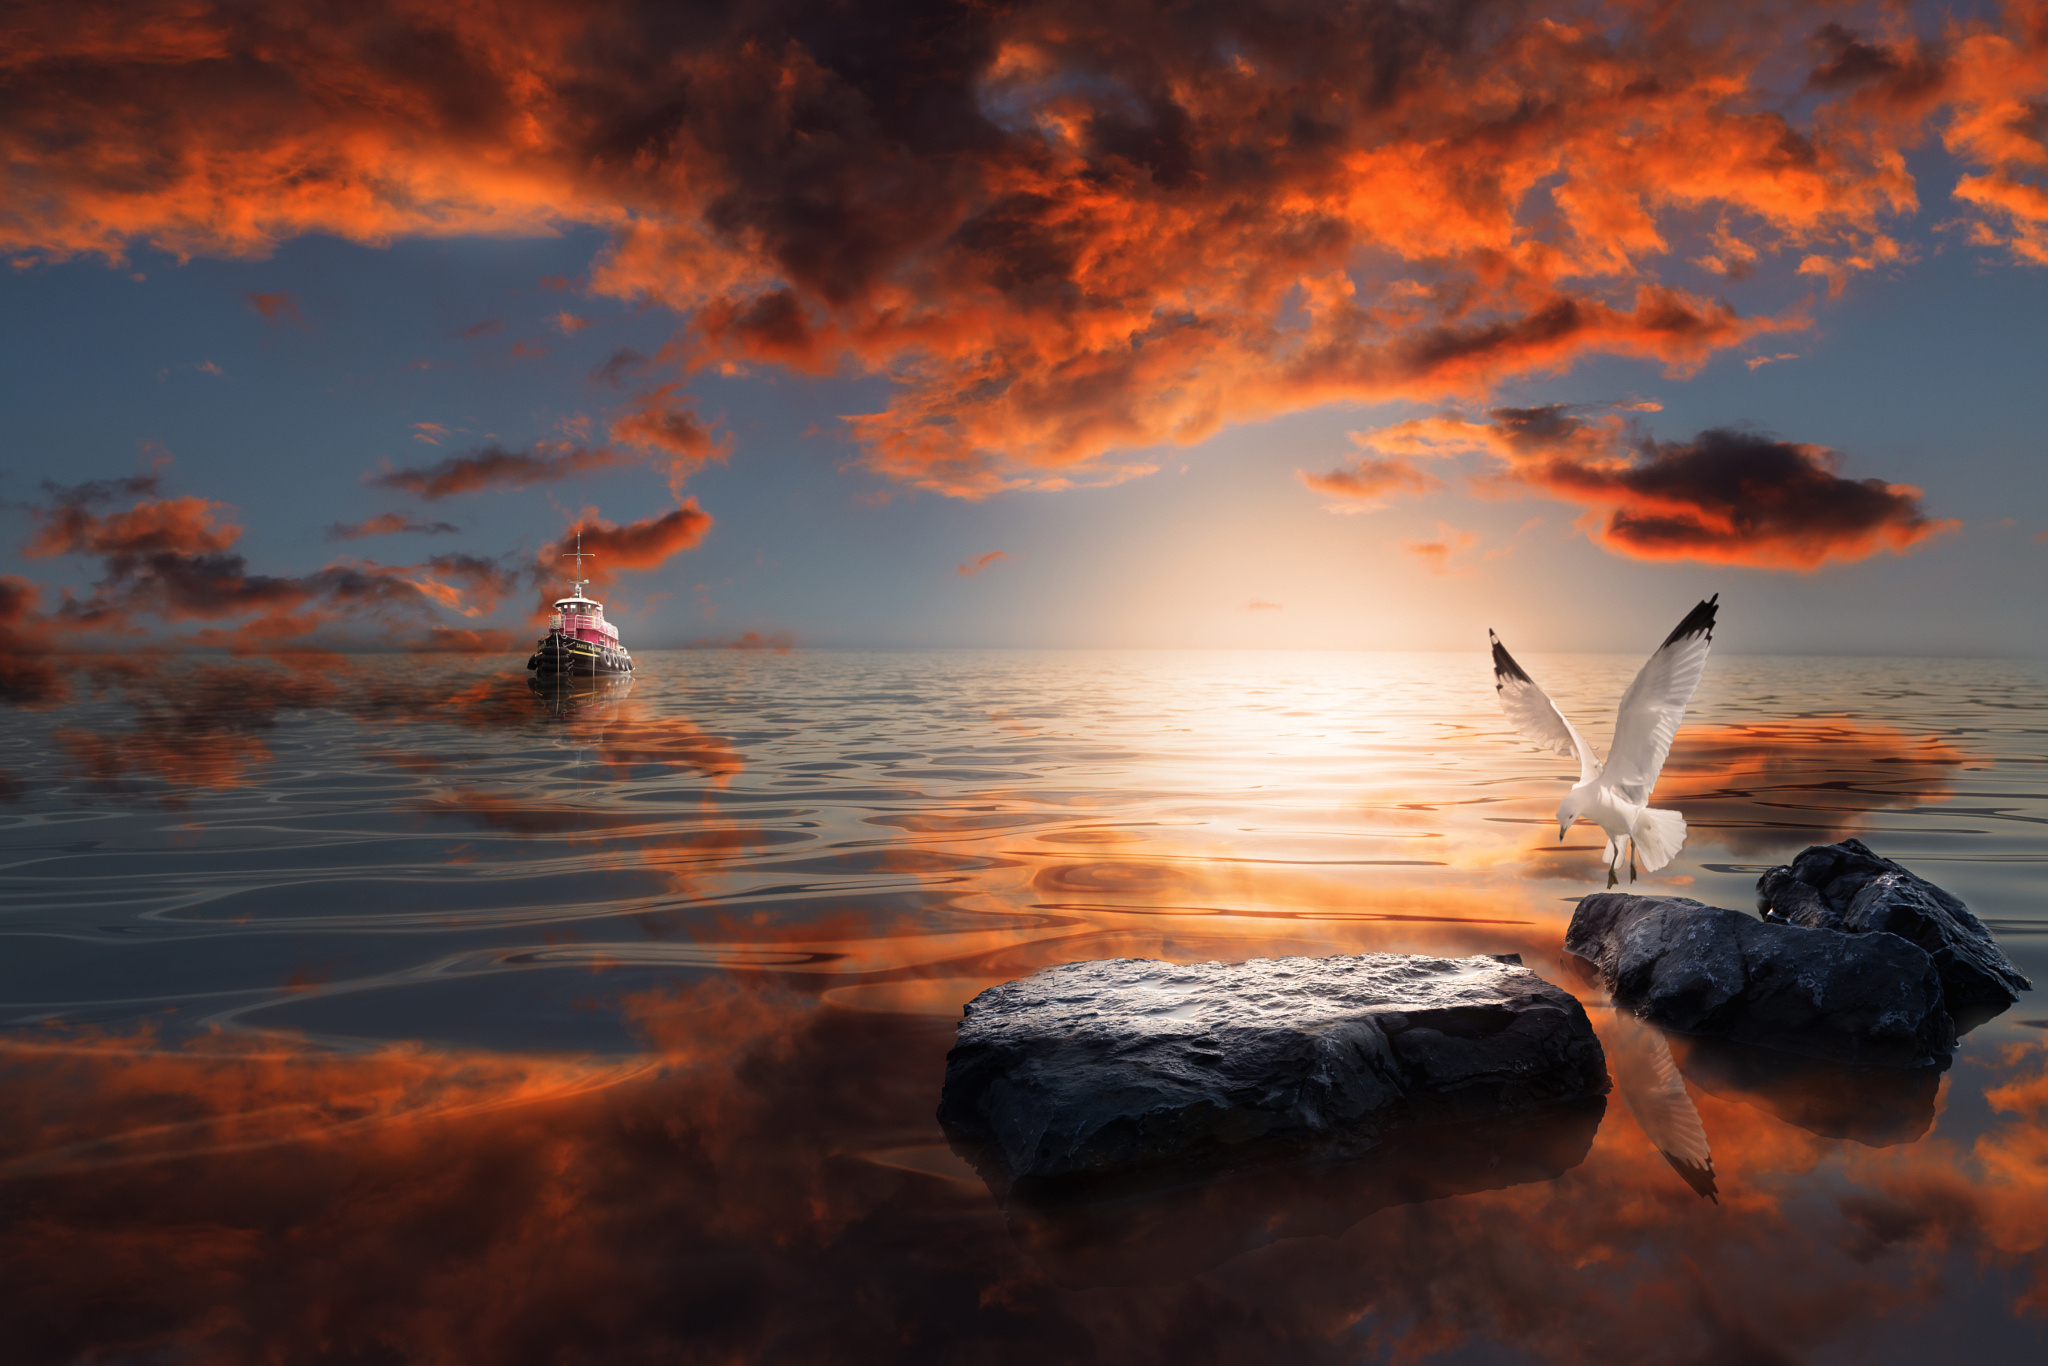 Px Blog The Passionate Photographer Community Tutorial - Photographer combines photoshops his own photos to create surreal landscapes